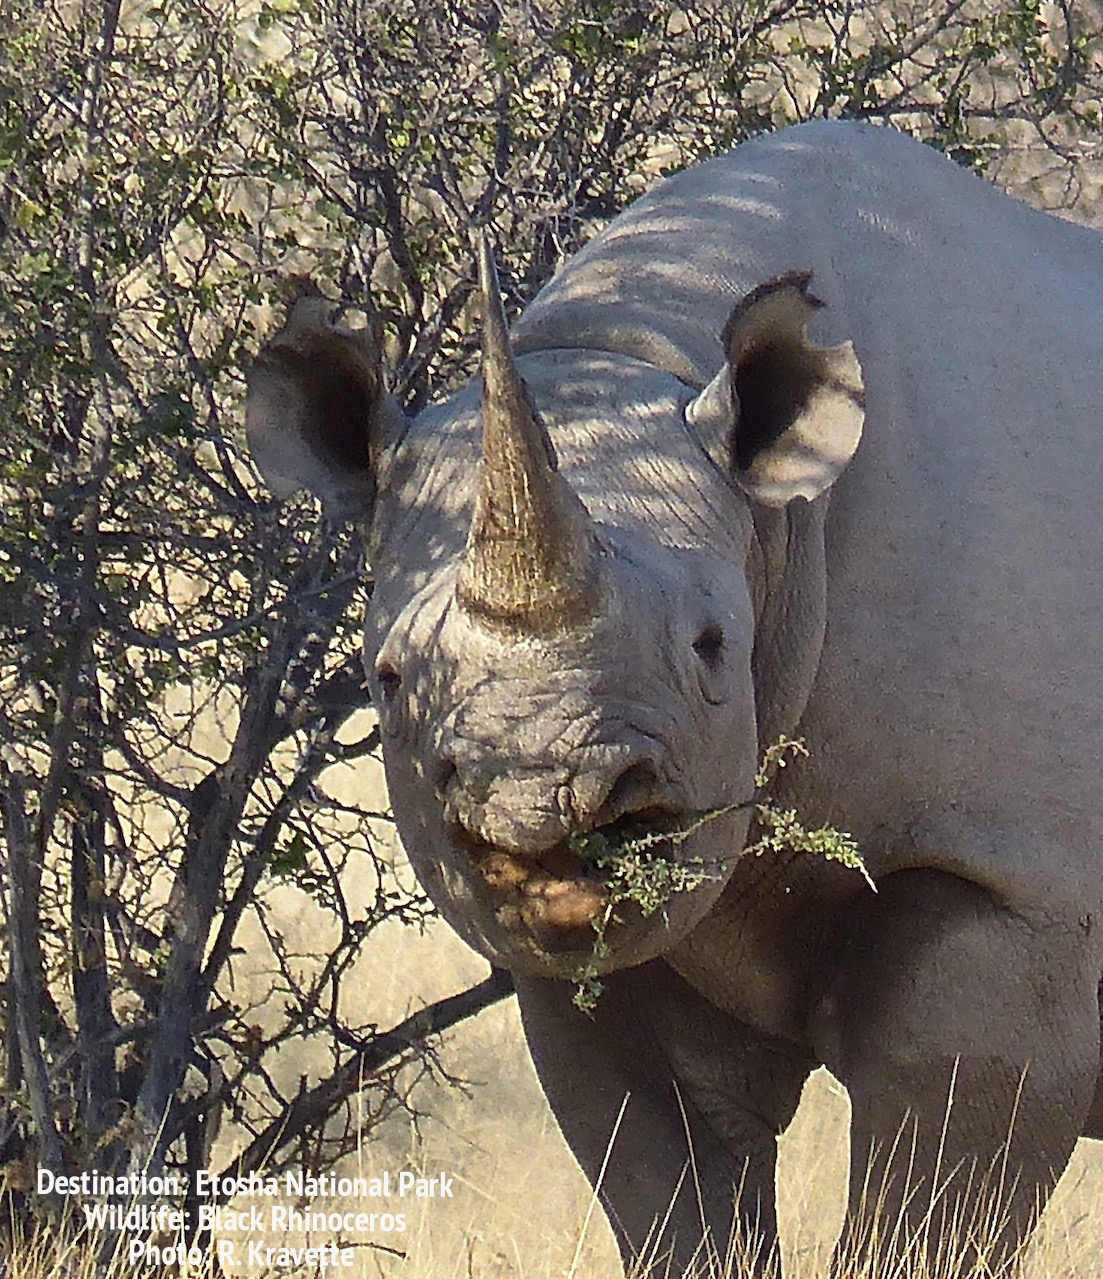 Black rhino use their tapered mouths to snip whole branches, it's white rhino cousin prefers salad without a woody component. Etosha National PArk, Namibia. Image: Wildlife: DEstinations